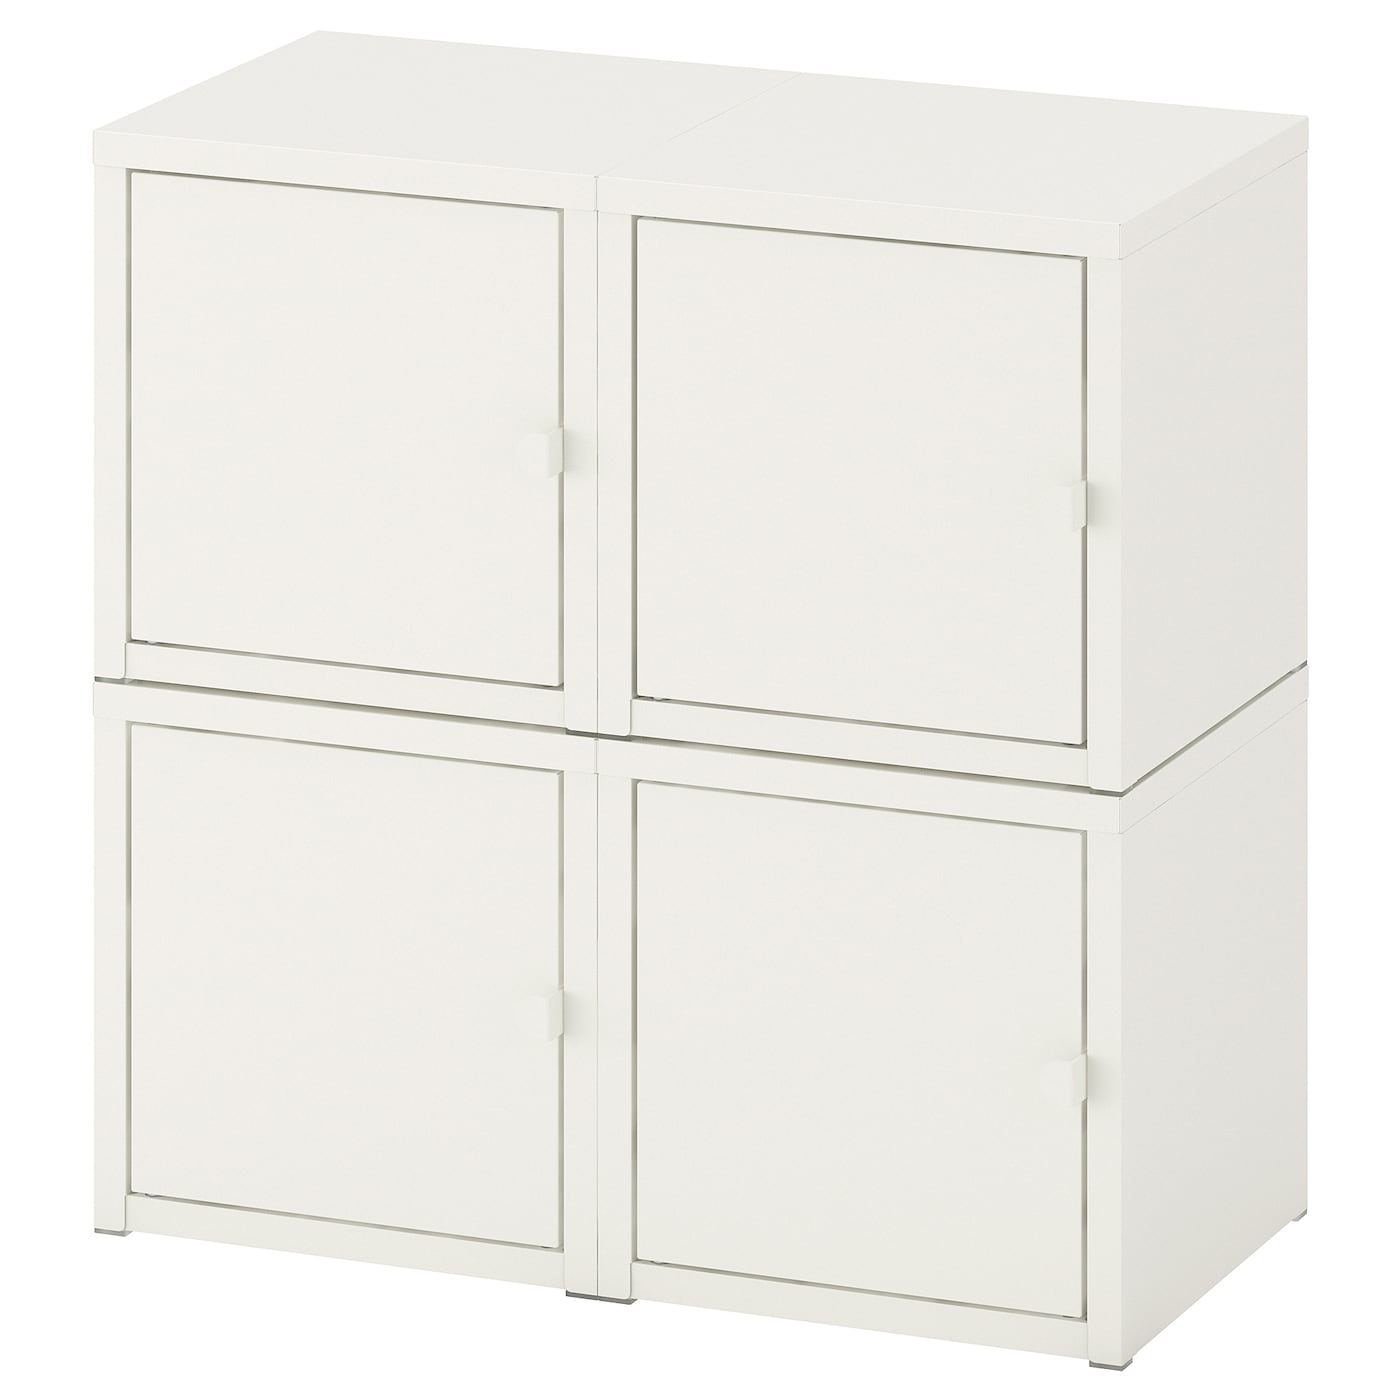 Ordinaire IKEA LIXHULT Wall Mounted Cabinet Combination